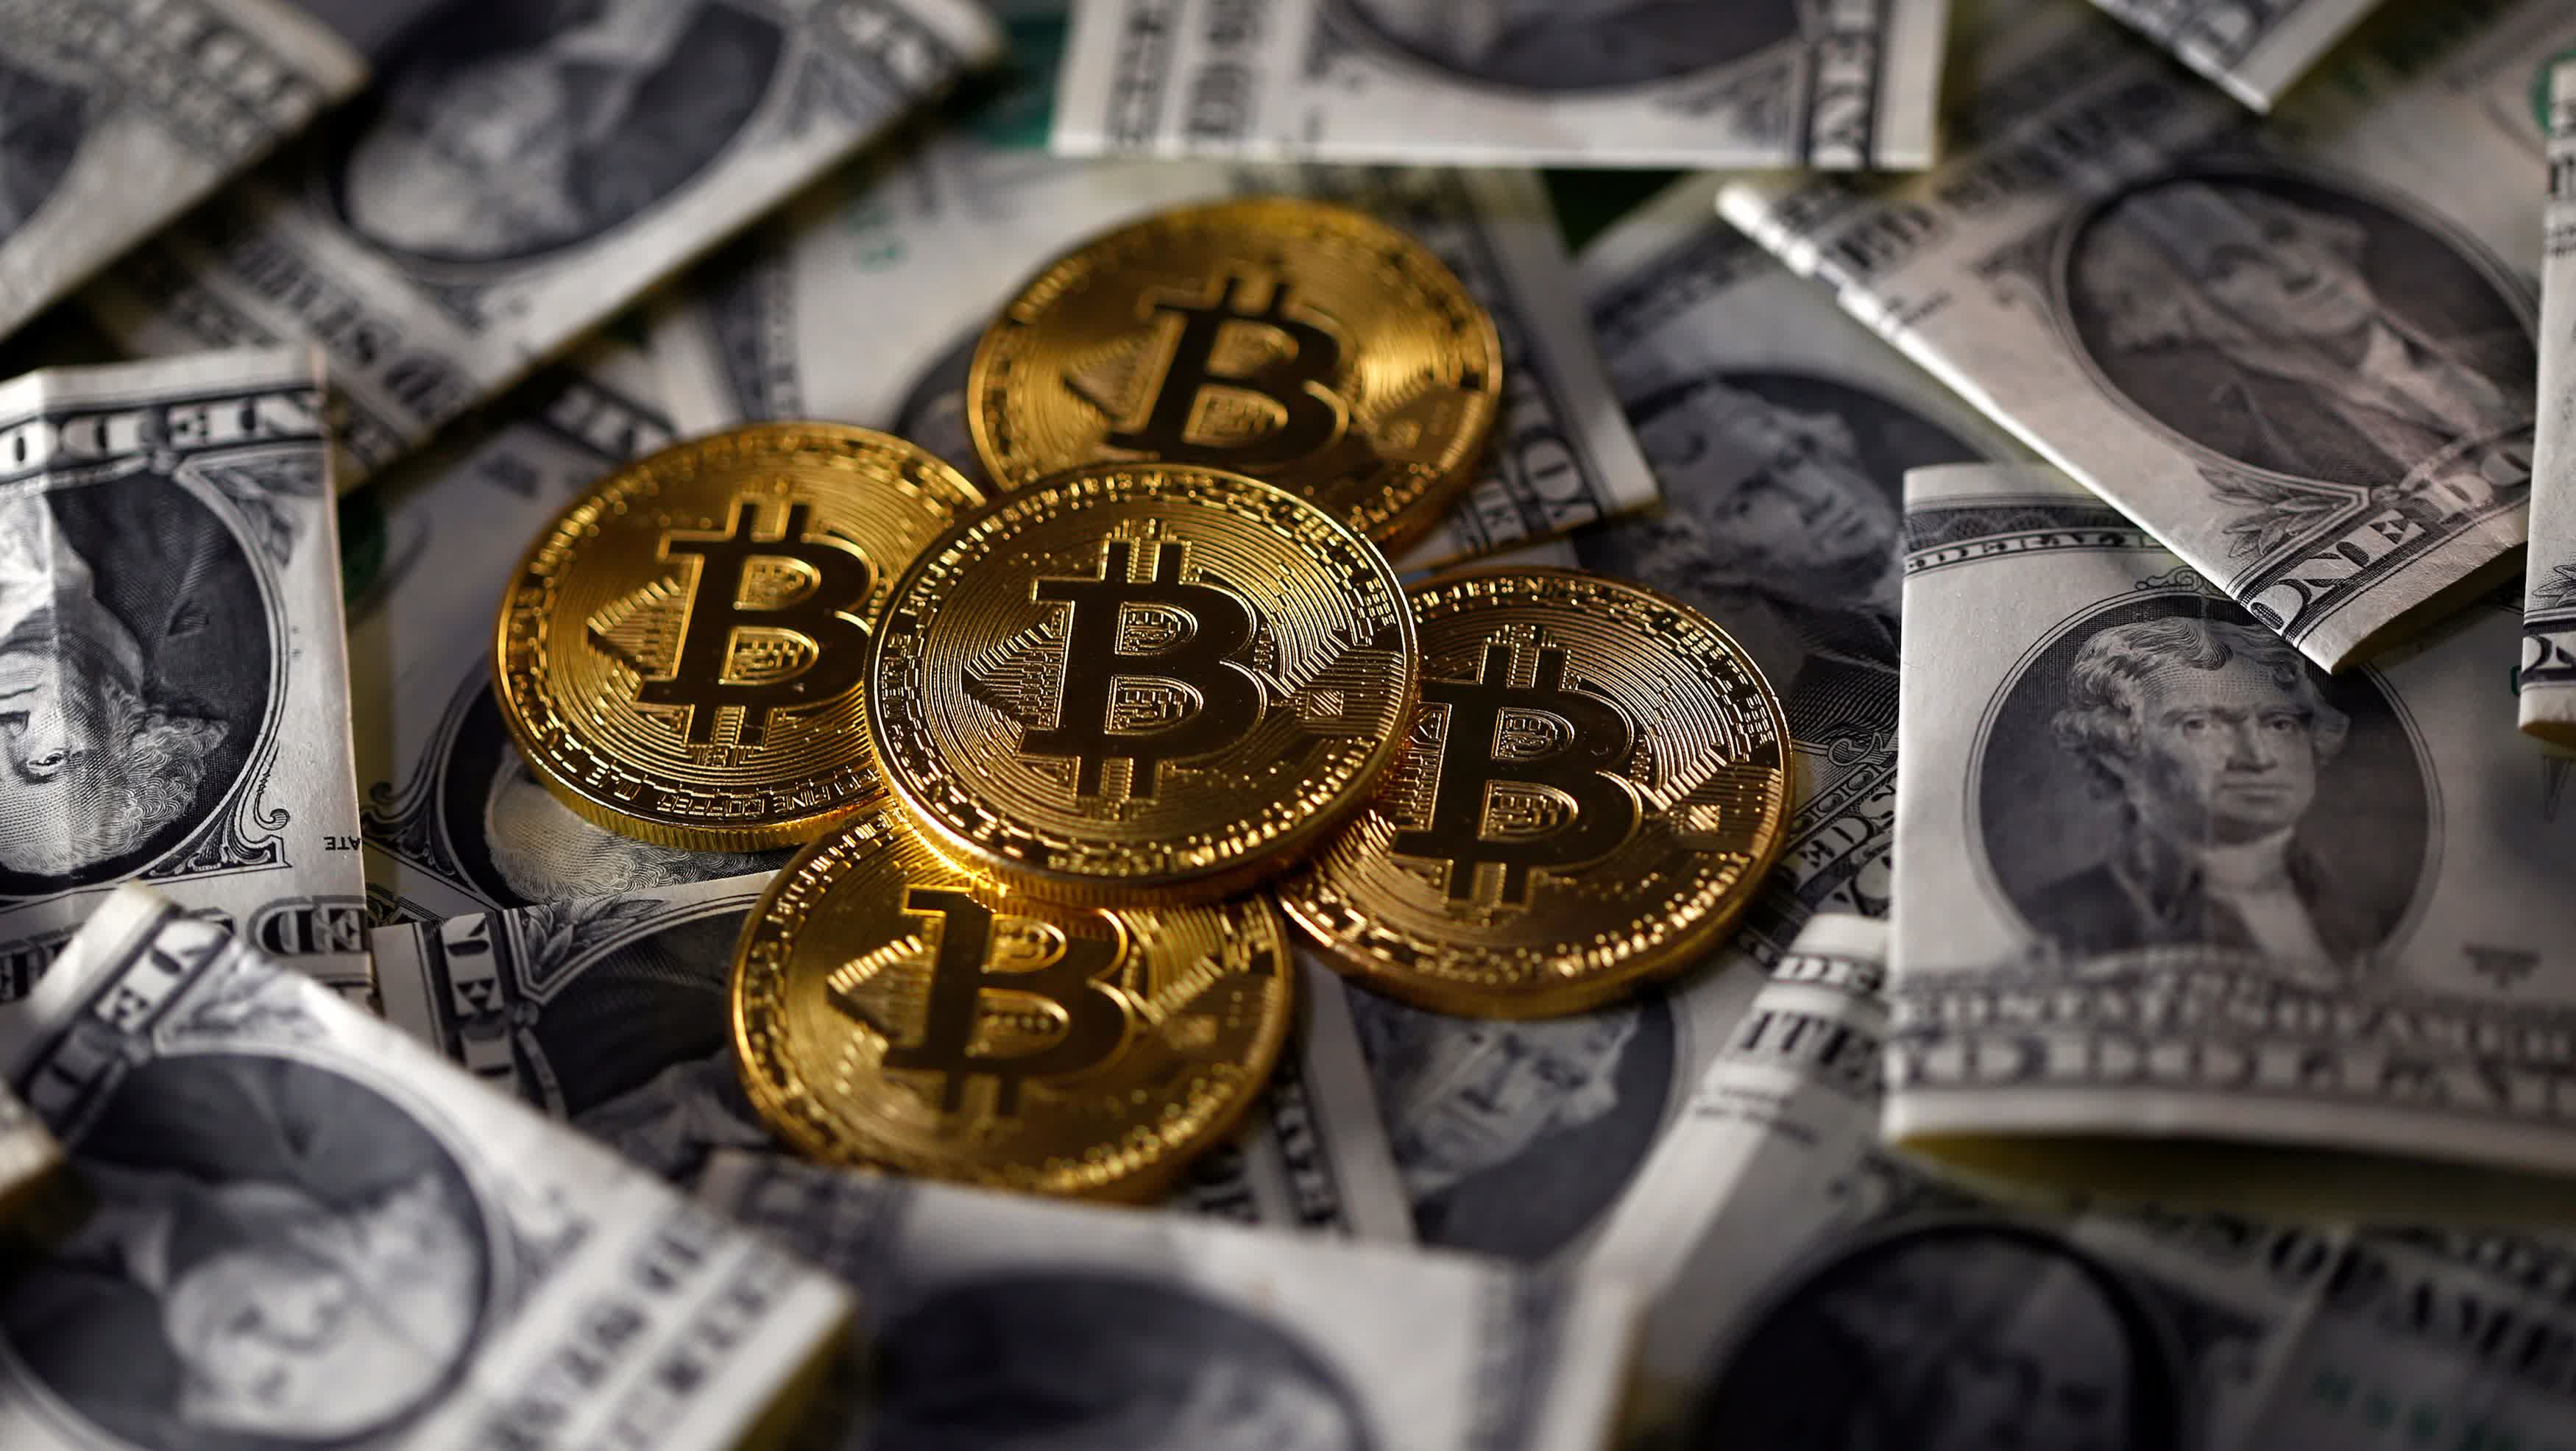 It's official: El Salvador is the first country to adopt Bitcoin as an official currency